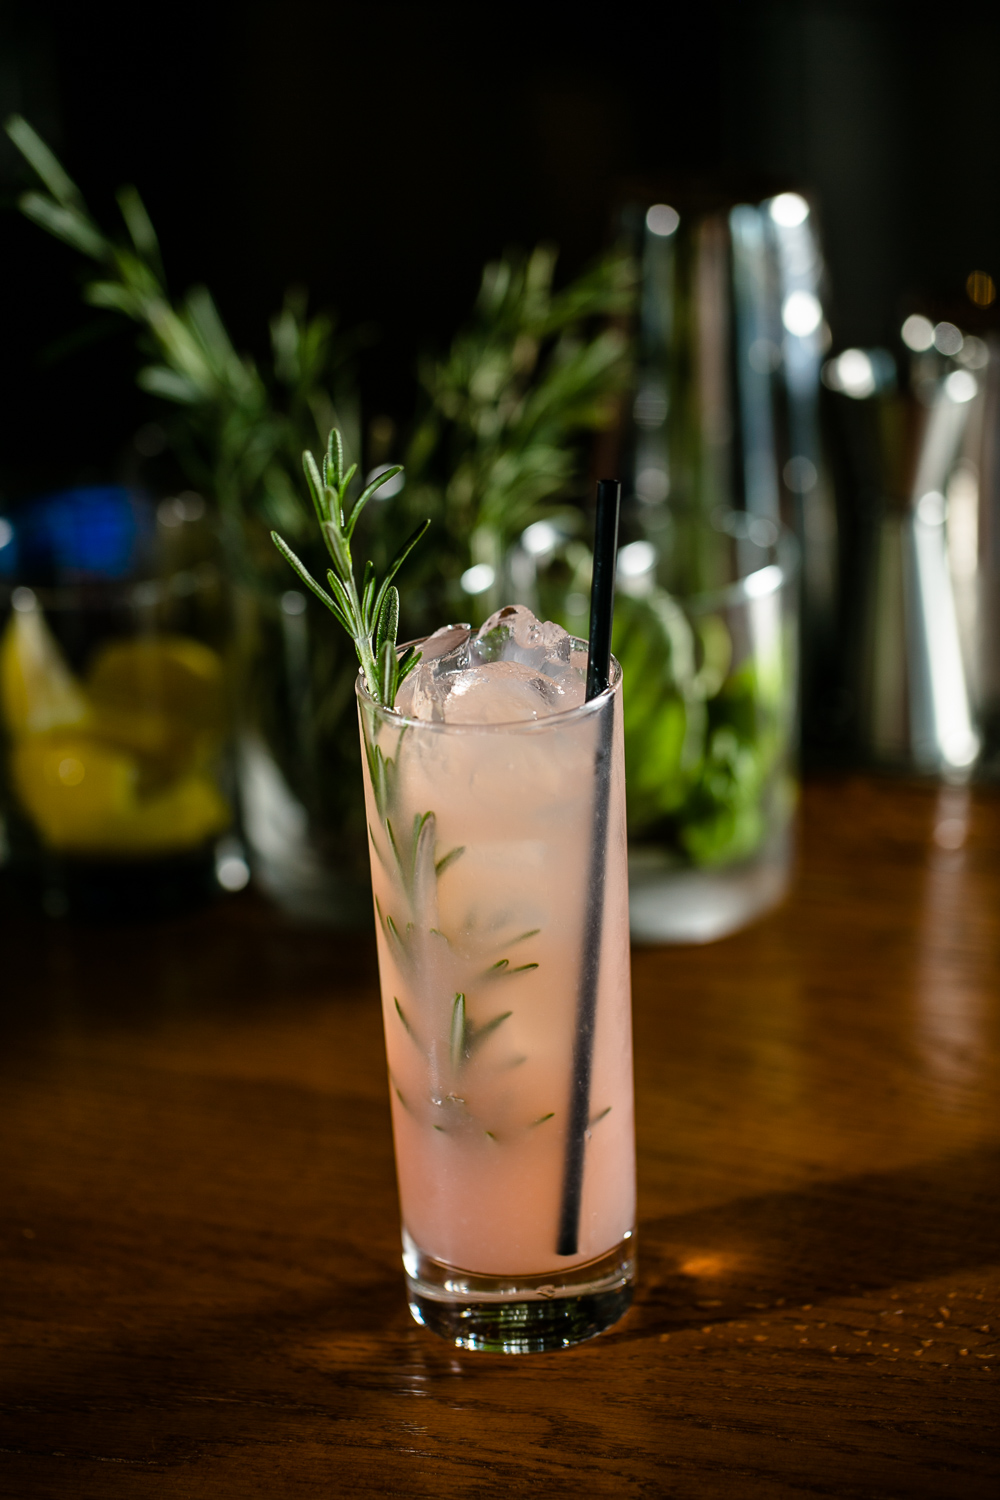 Donetto-Rosemary-Cocktail-Erik-Meadows